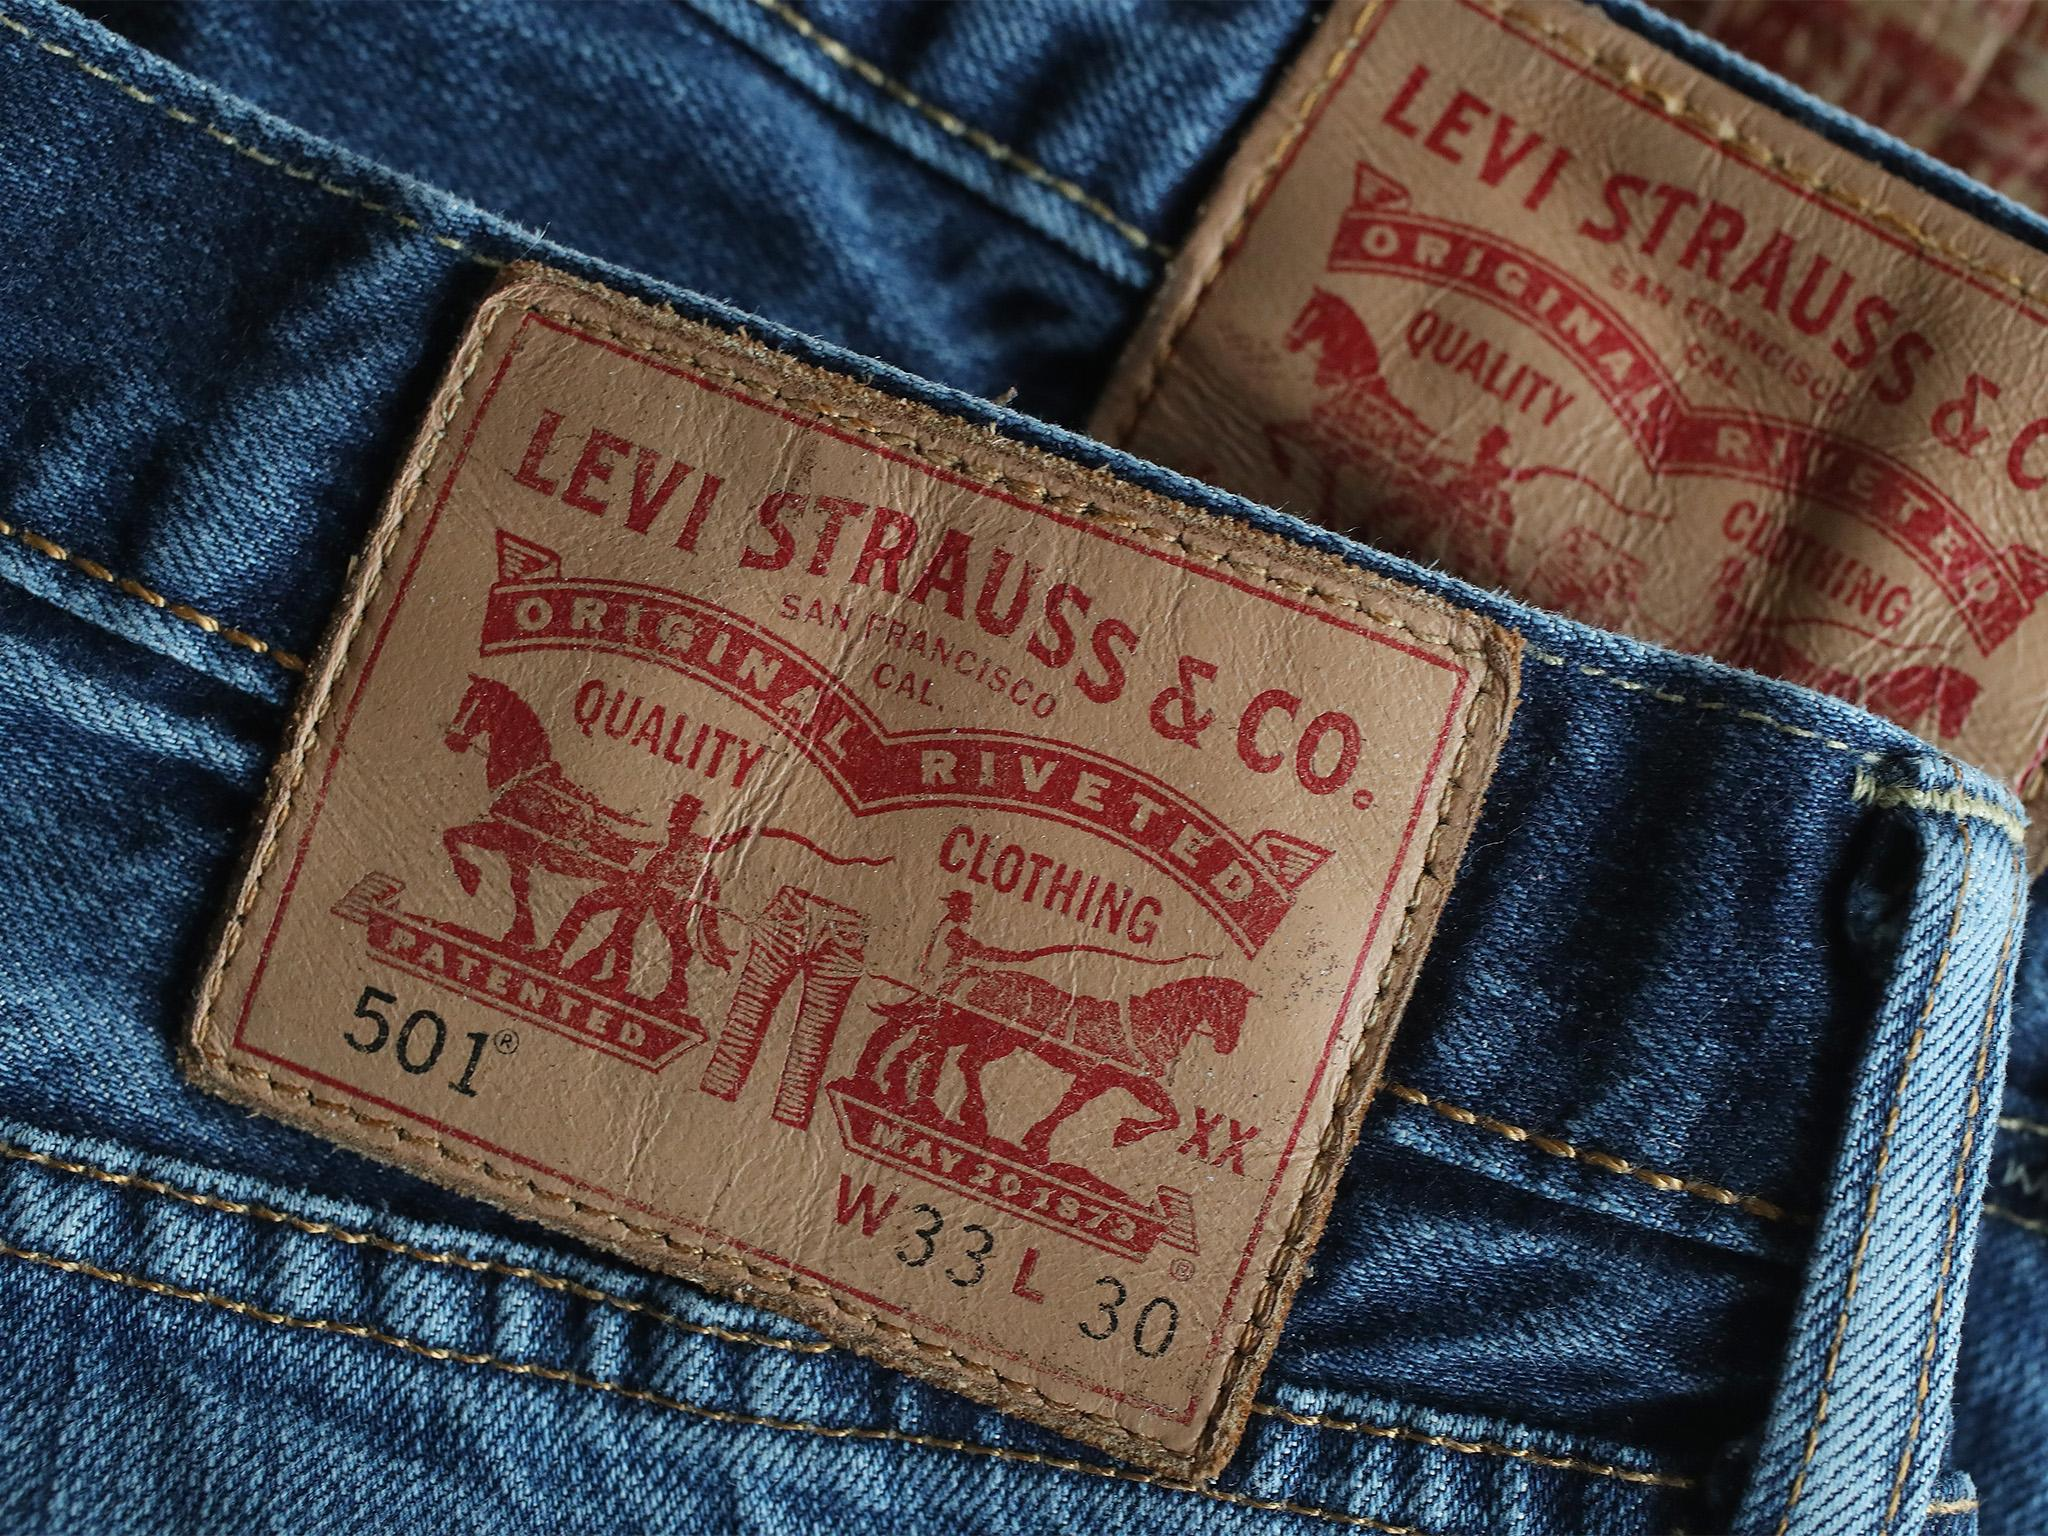 Levi Strauss joins up with gun control group: 'Americans ...